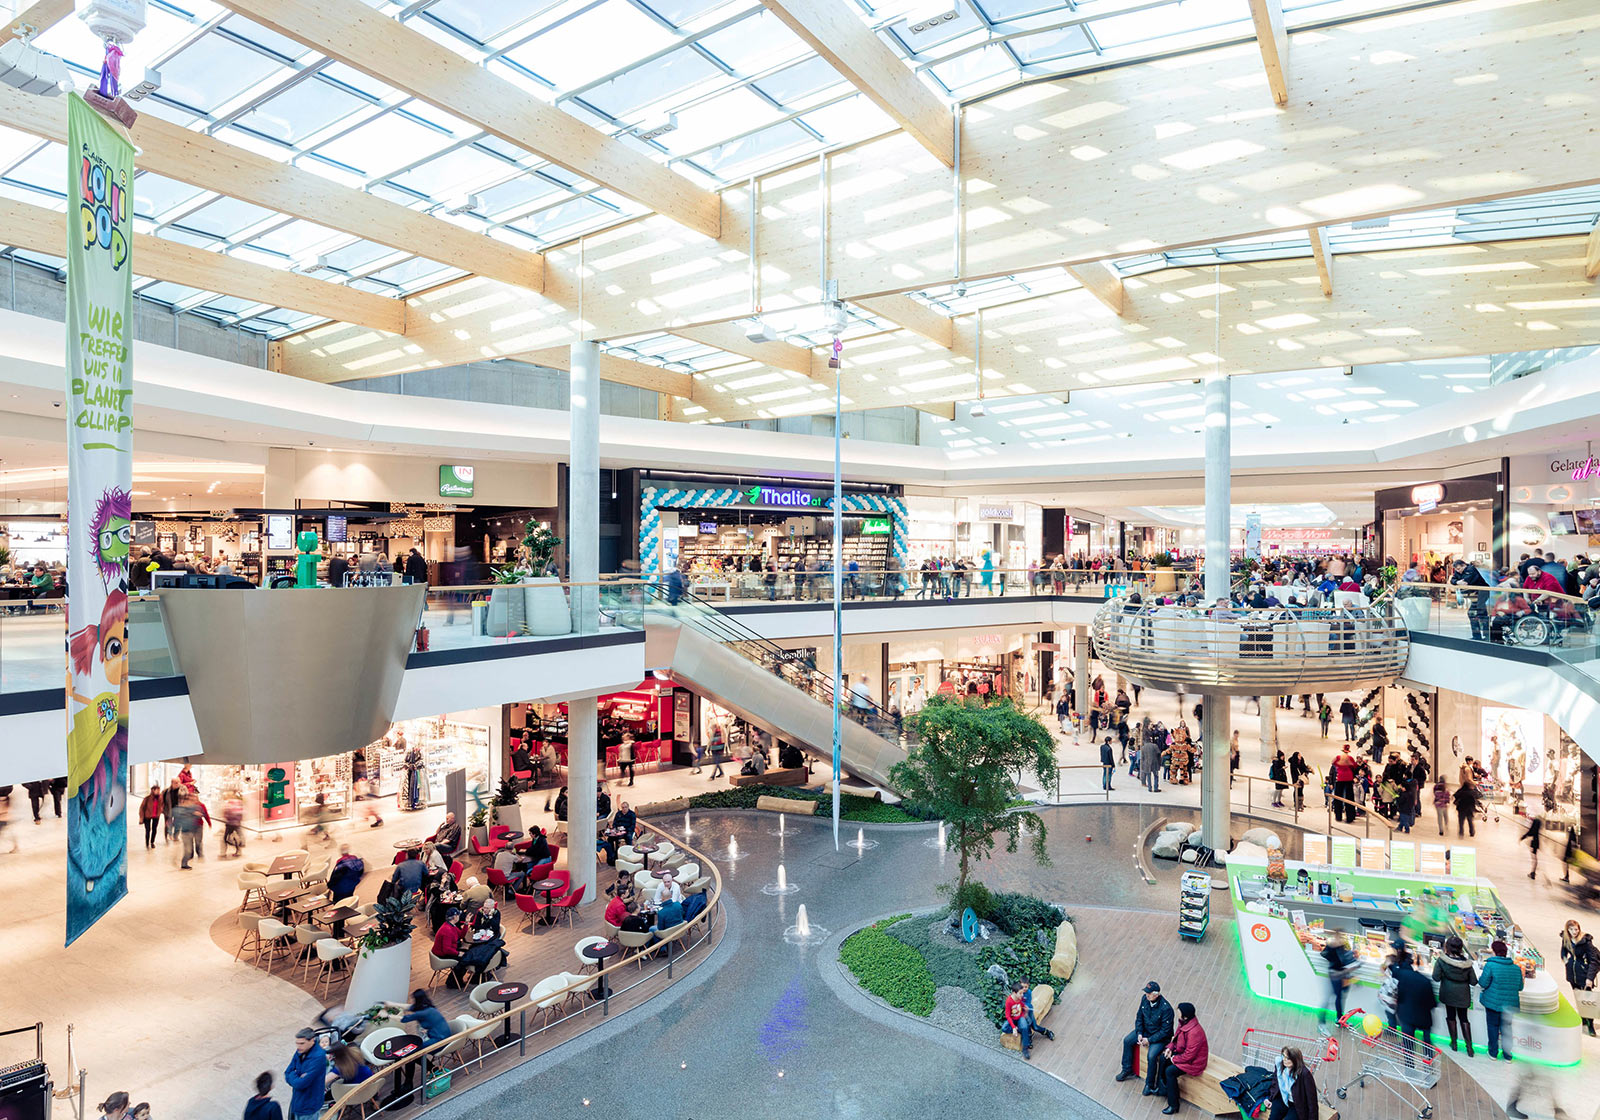 The modern shopping center with many natural elements and light-filled spaces. Photo: SES/Robert Fritz